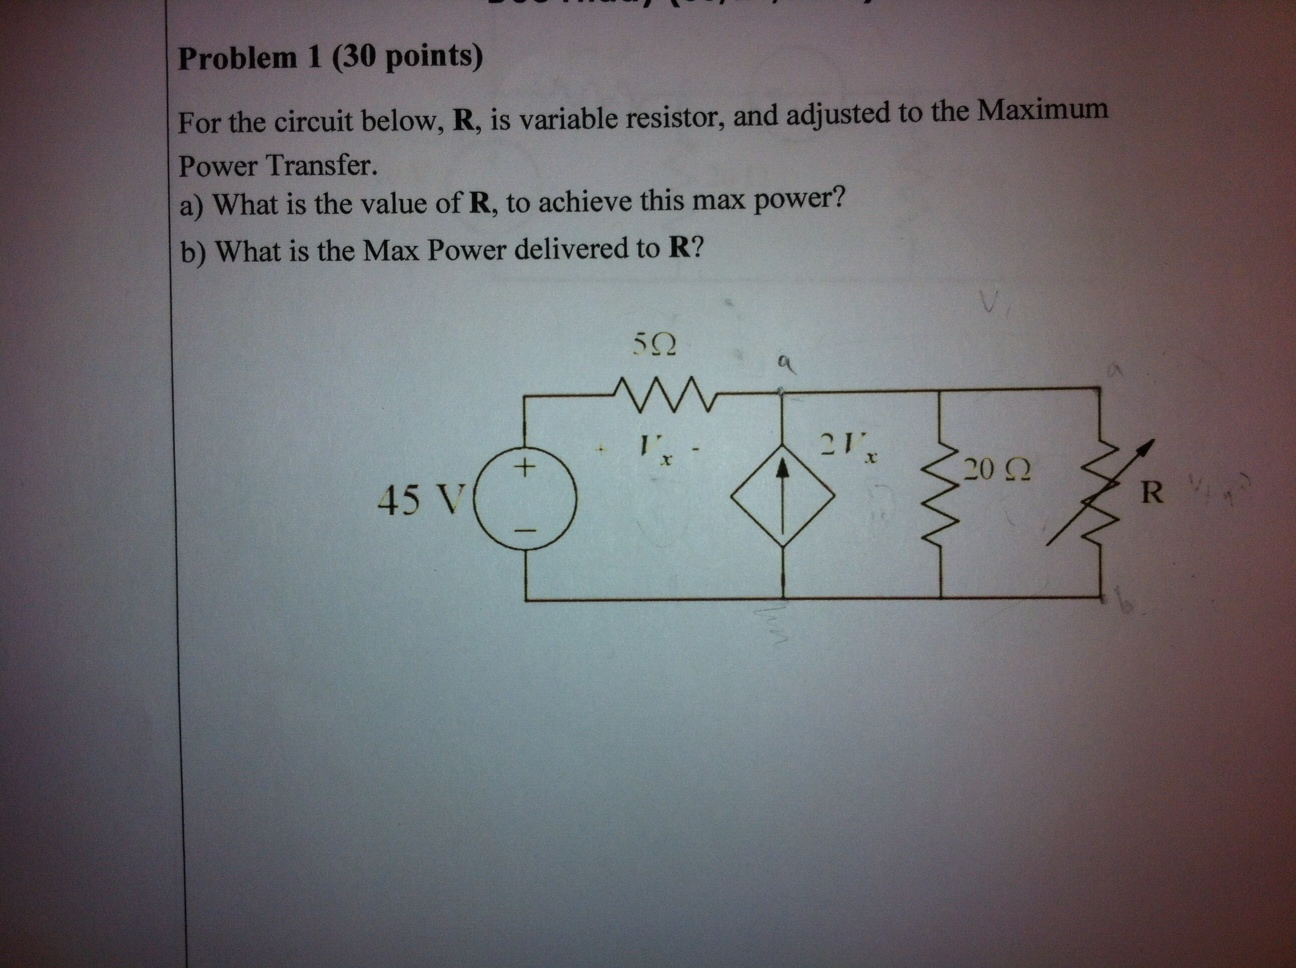 For the circuit below, R, is variable resistor, an